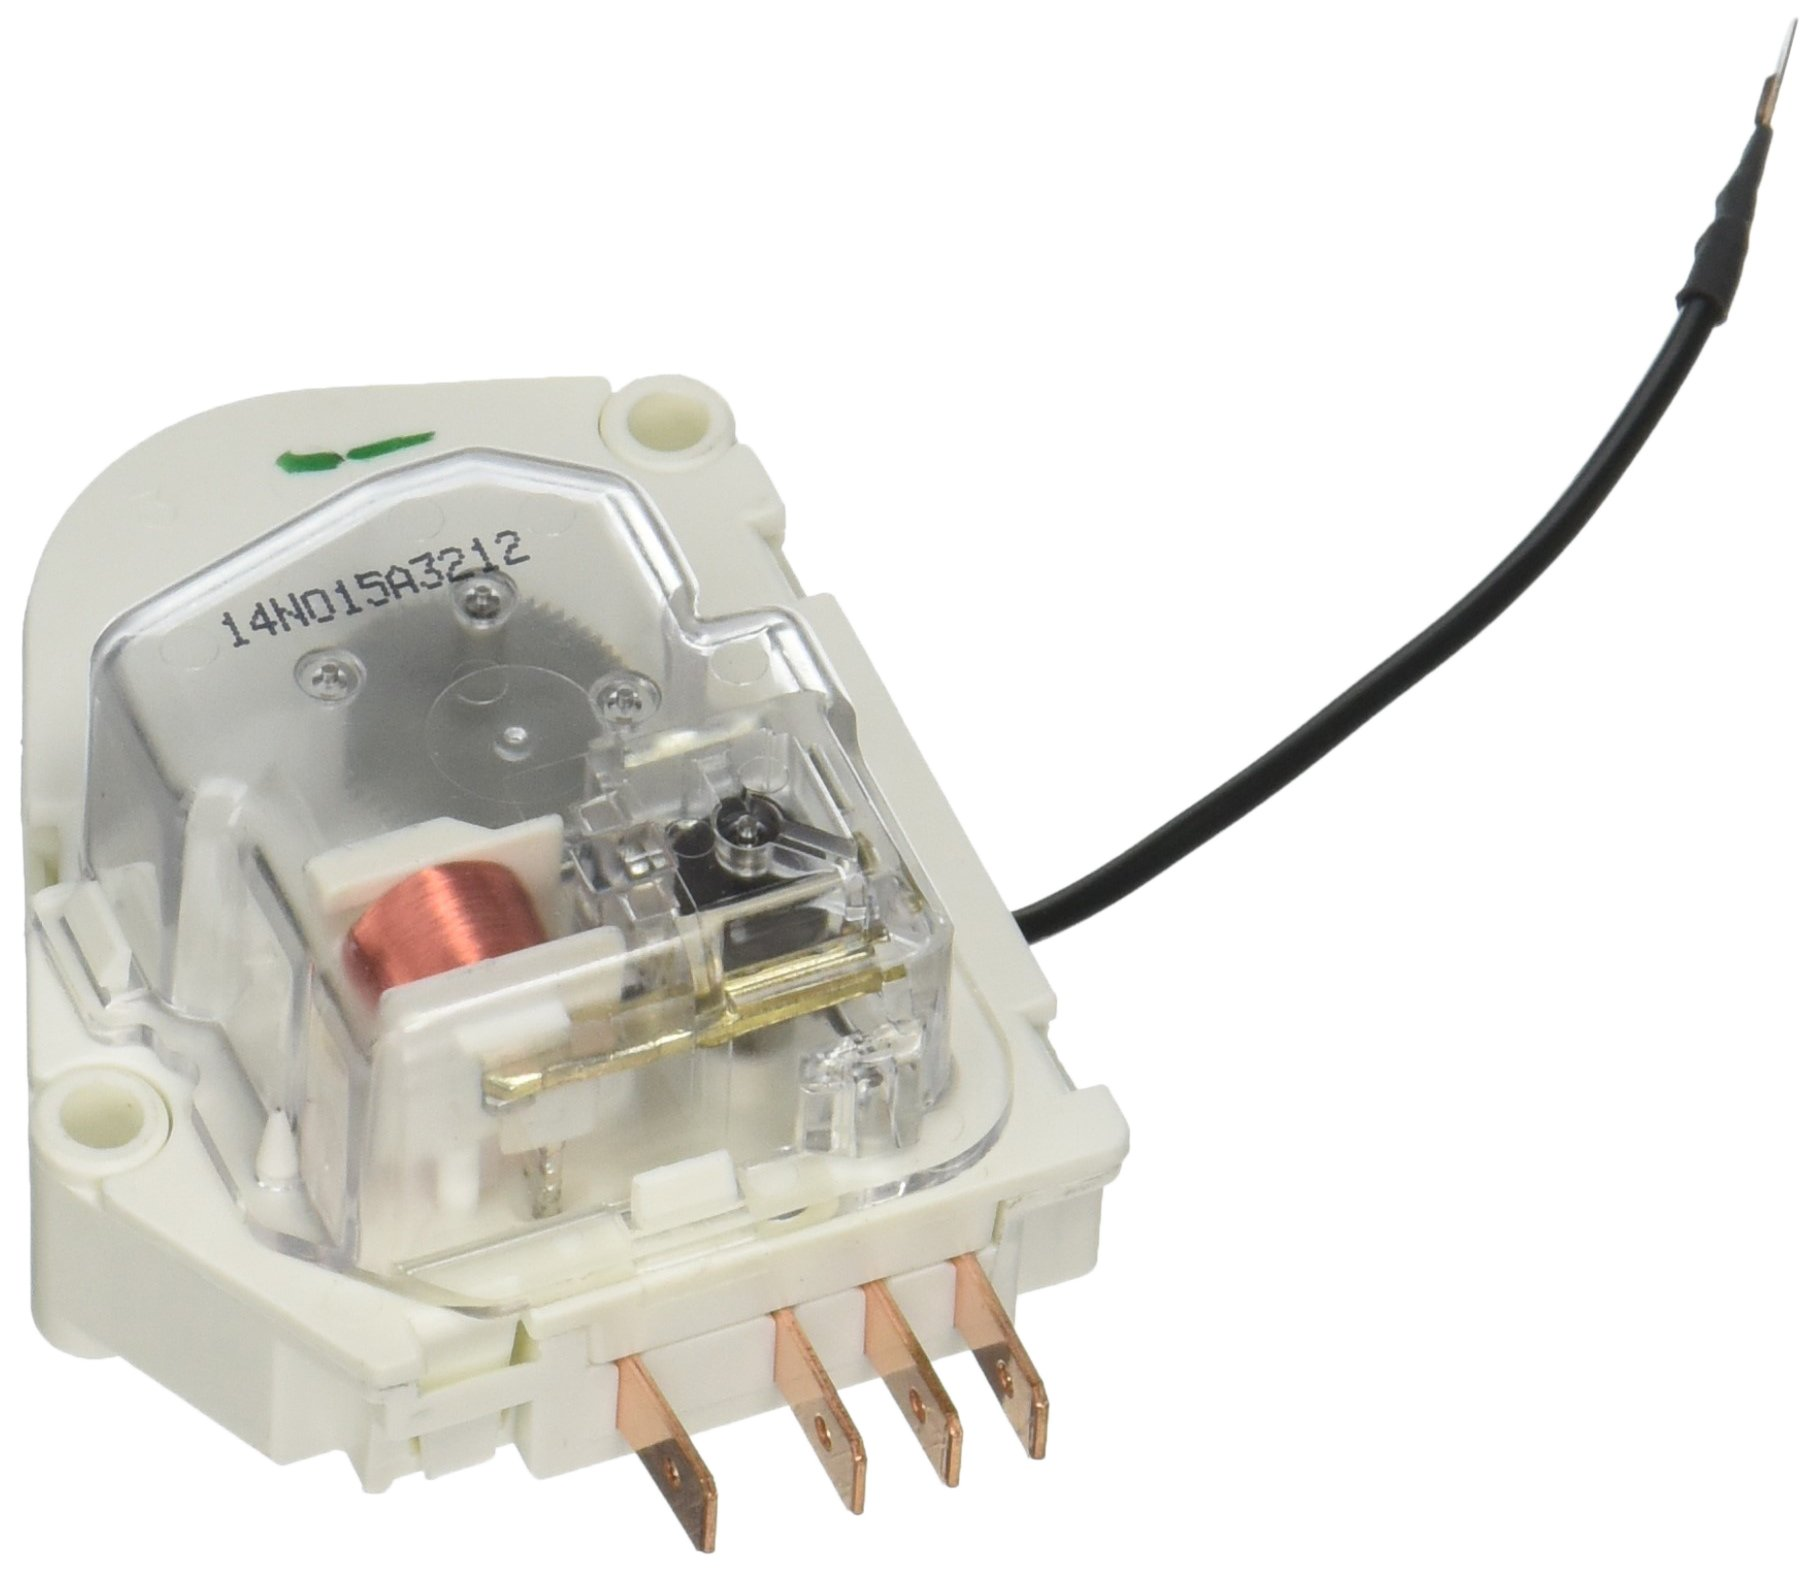 Whirlpool W10822278 Refrigerator Defrost Timer by Whirlpool